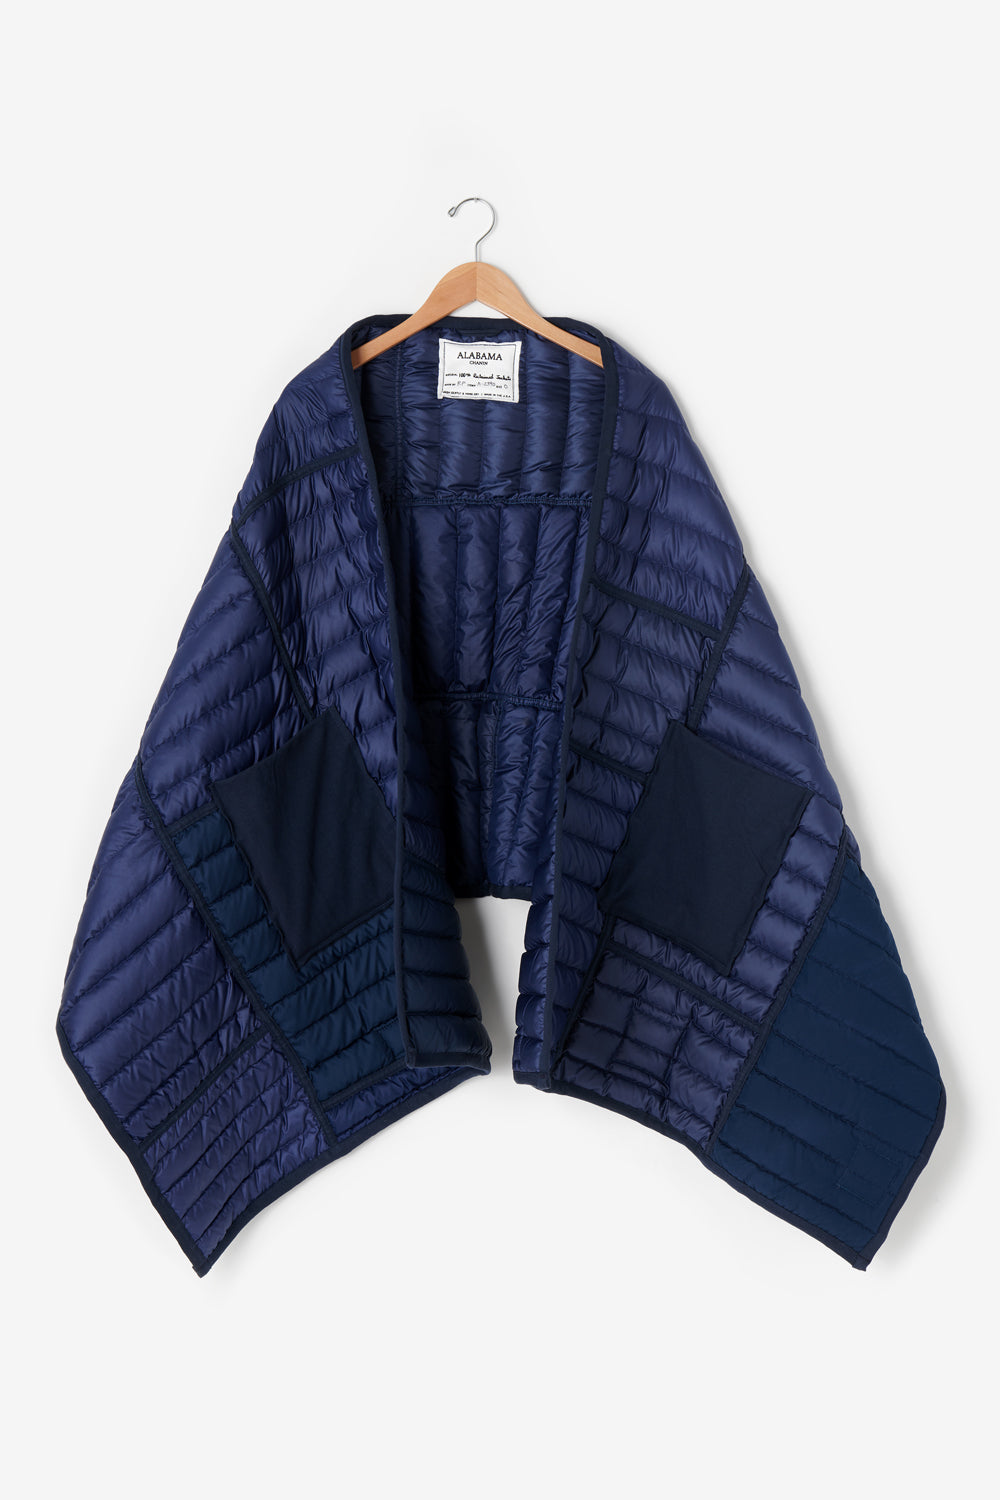 Alabama Chanin Reclaimed Down Wrap in Navy Upcycled Sustainably in the USA